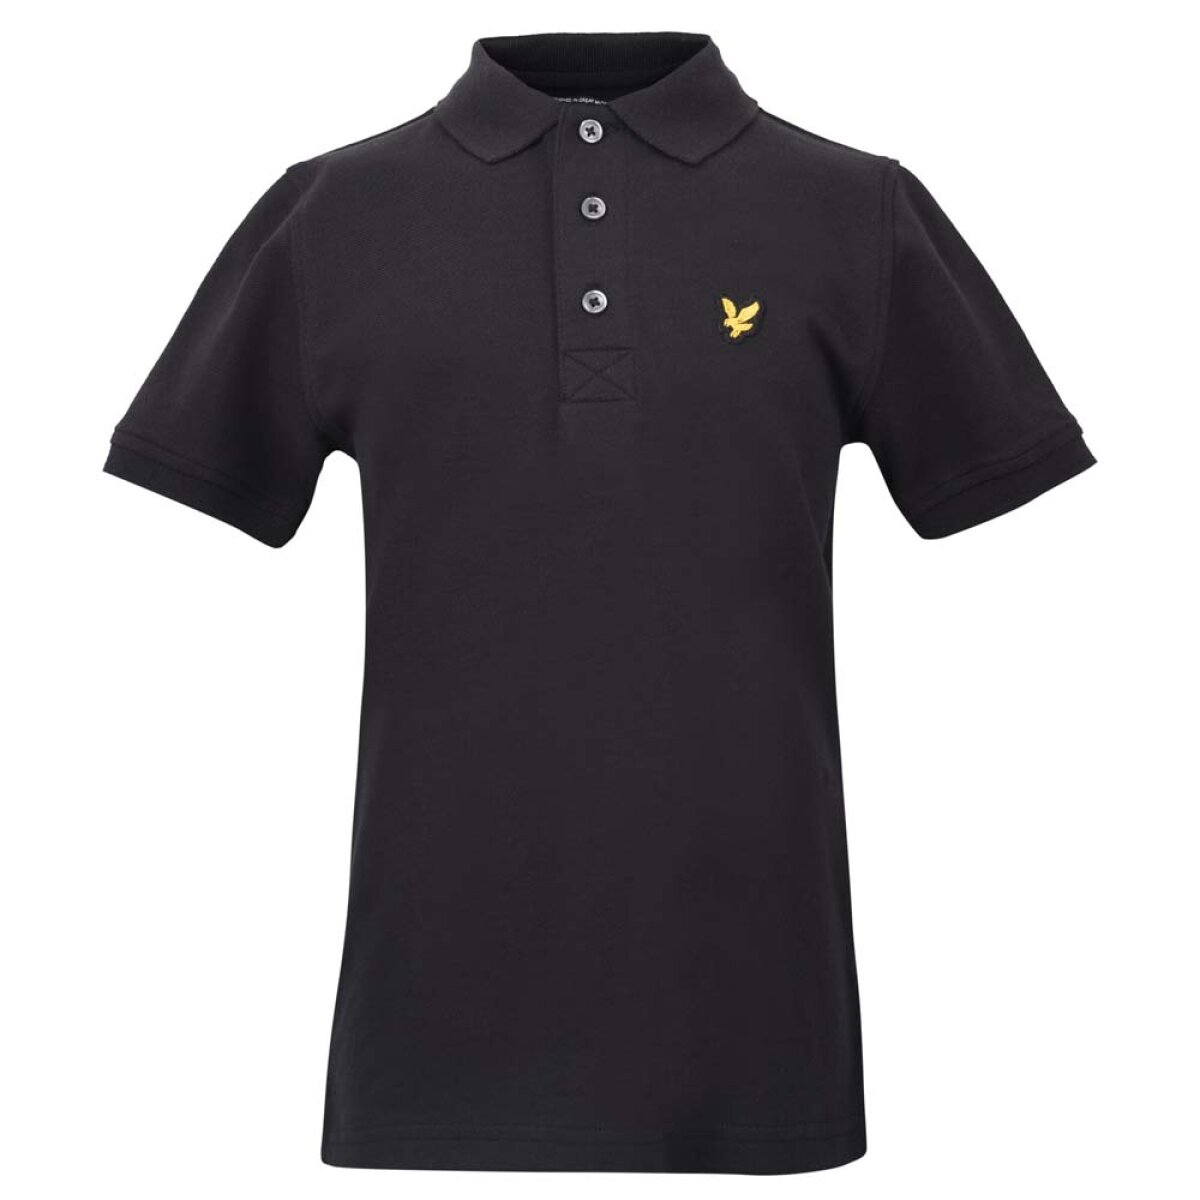 Lyle & Scott polo (va.128/134)